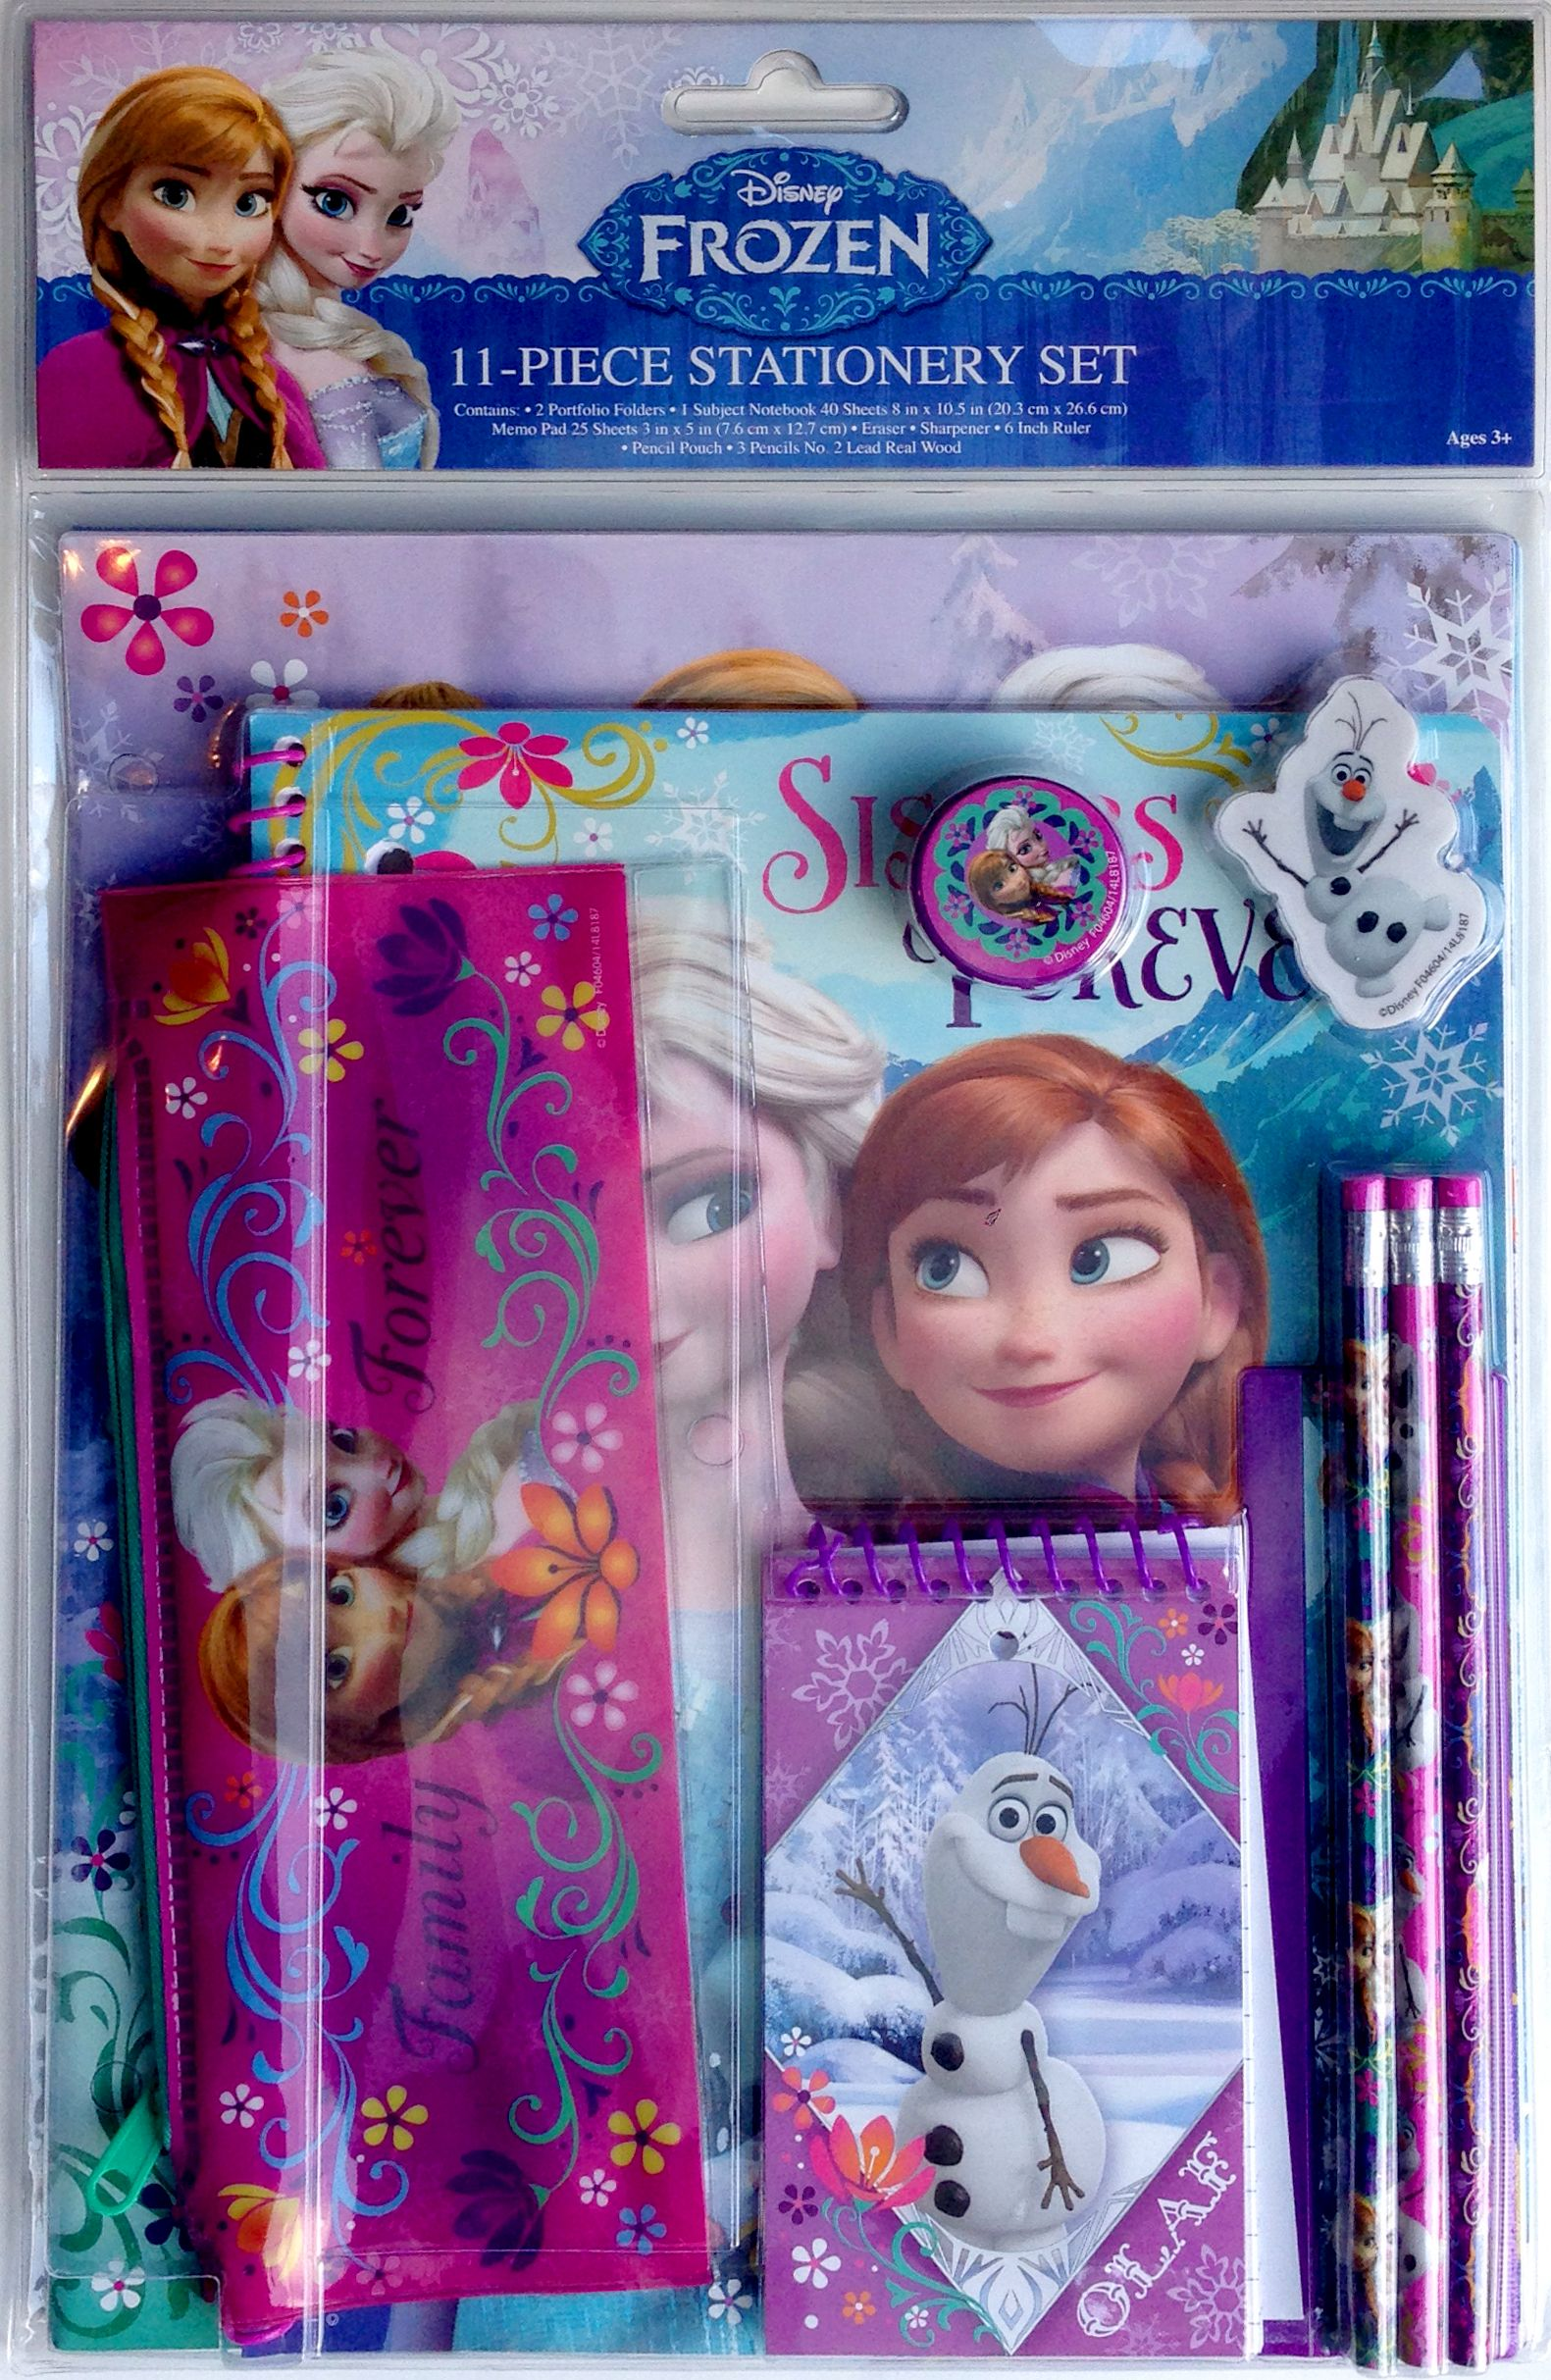 6 pc DISNEY FROZEN PENCILS /& 20 PACK ERASERS BIRTHDAY PARTY FAVOR ELSA ANNA OLAF